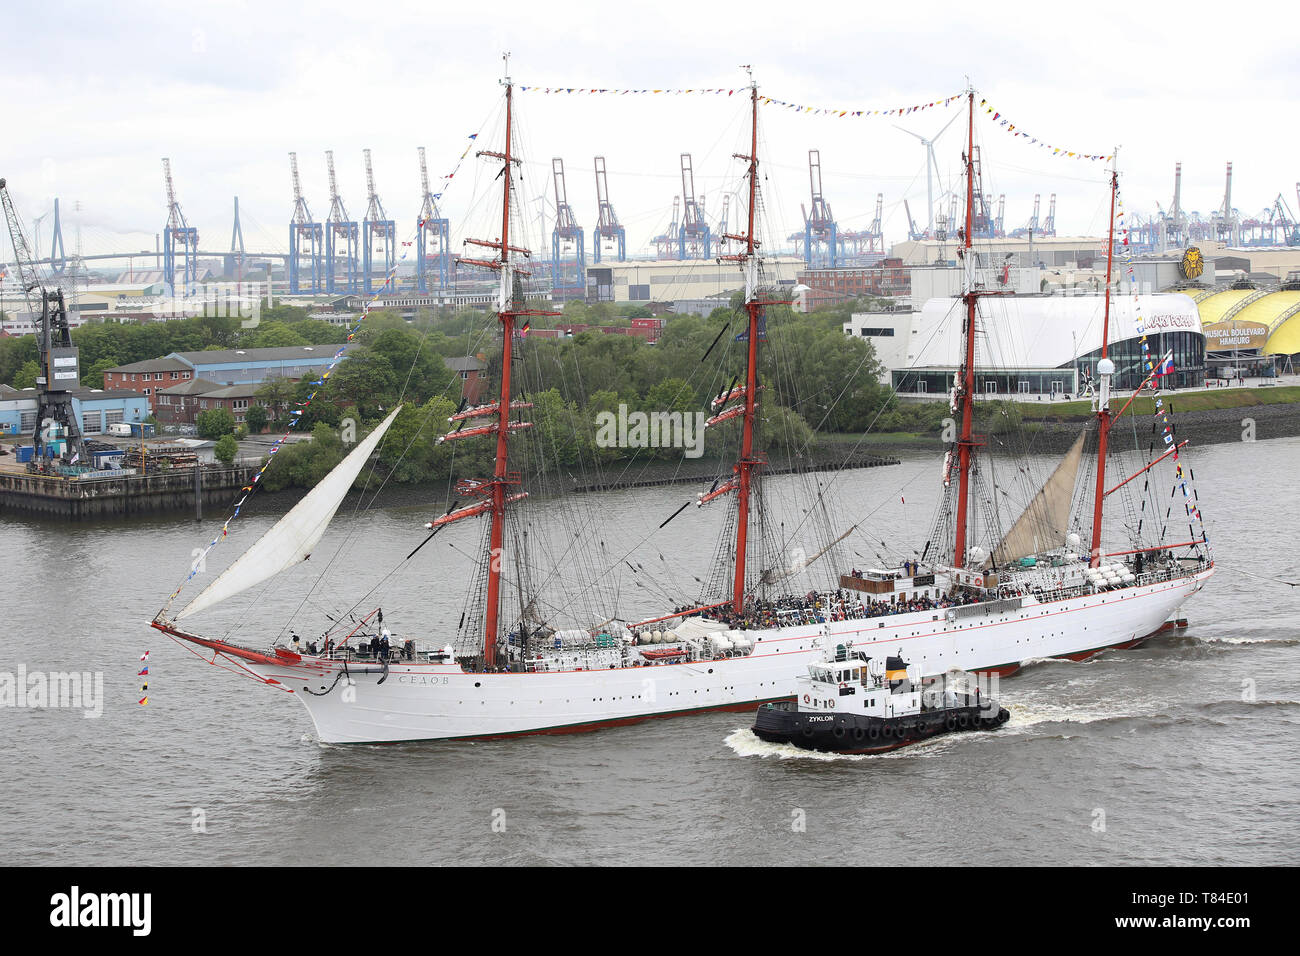 Hamburg, Germany. 10th May, 2019. The Russian tall ship Sedov is sailing on the Elbe during the entry parade of the harbour birthday. The 830th Hamburg Harbour Birthday has begun. The people of Hamburg regard 7 May 1189 as the birthday of their port - at that time the citizens of Hamburg were granted duty-free access for their ships on the Elbe from the city to the North Sea. It is considered the world's largest harbour festival. Credit: Bodo Marks/dpa/Alamy Live News - Stock Image